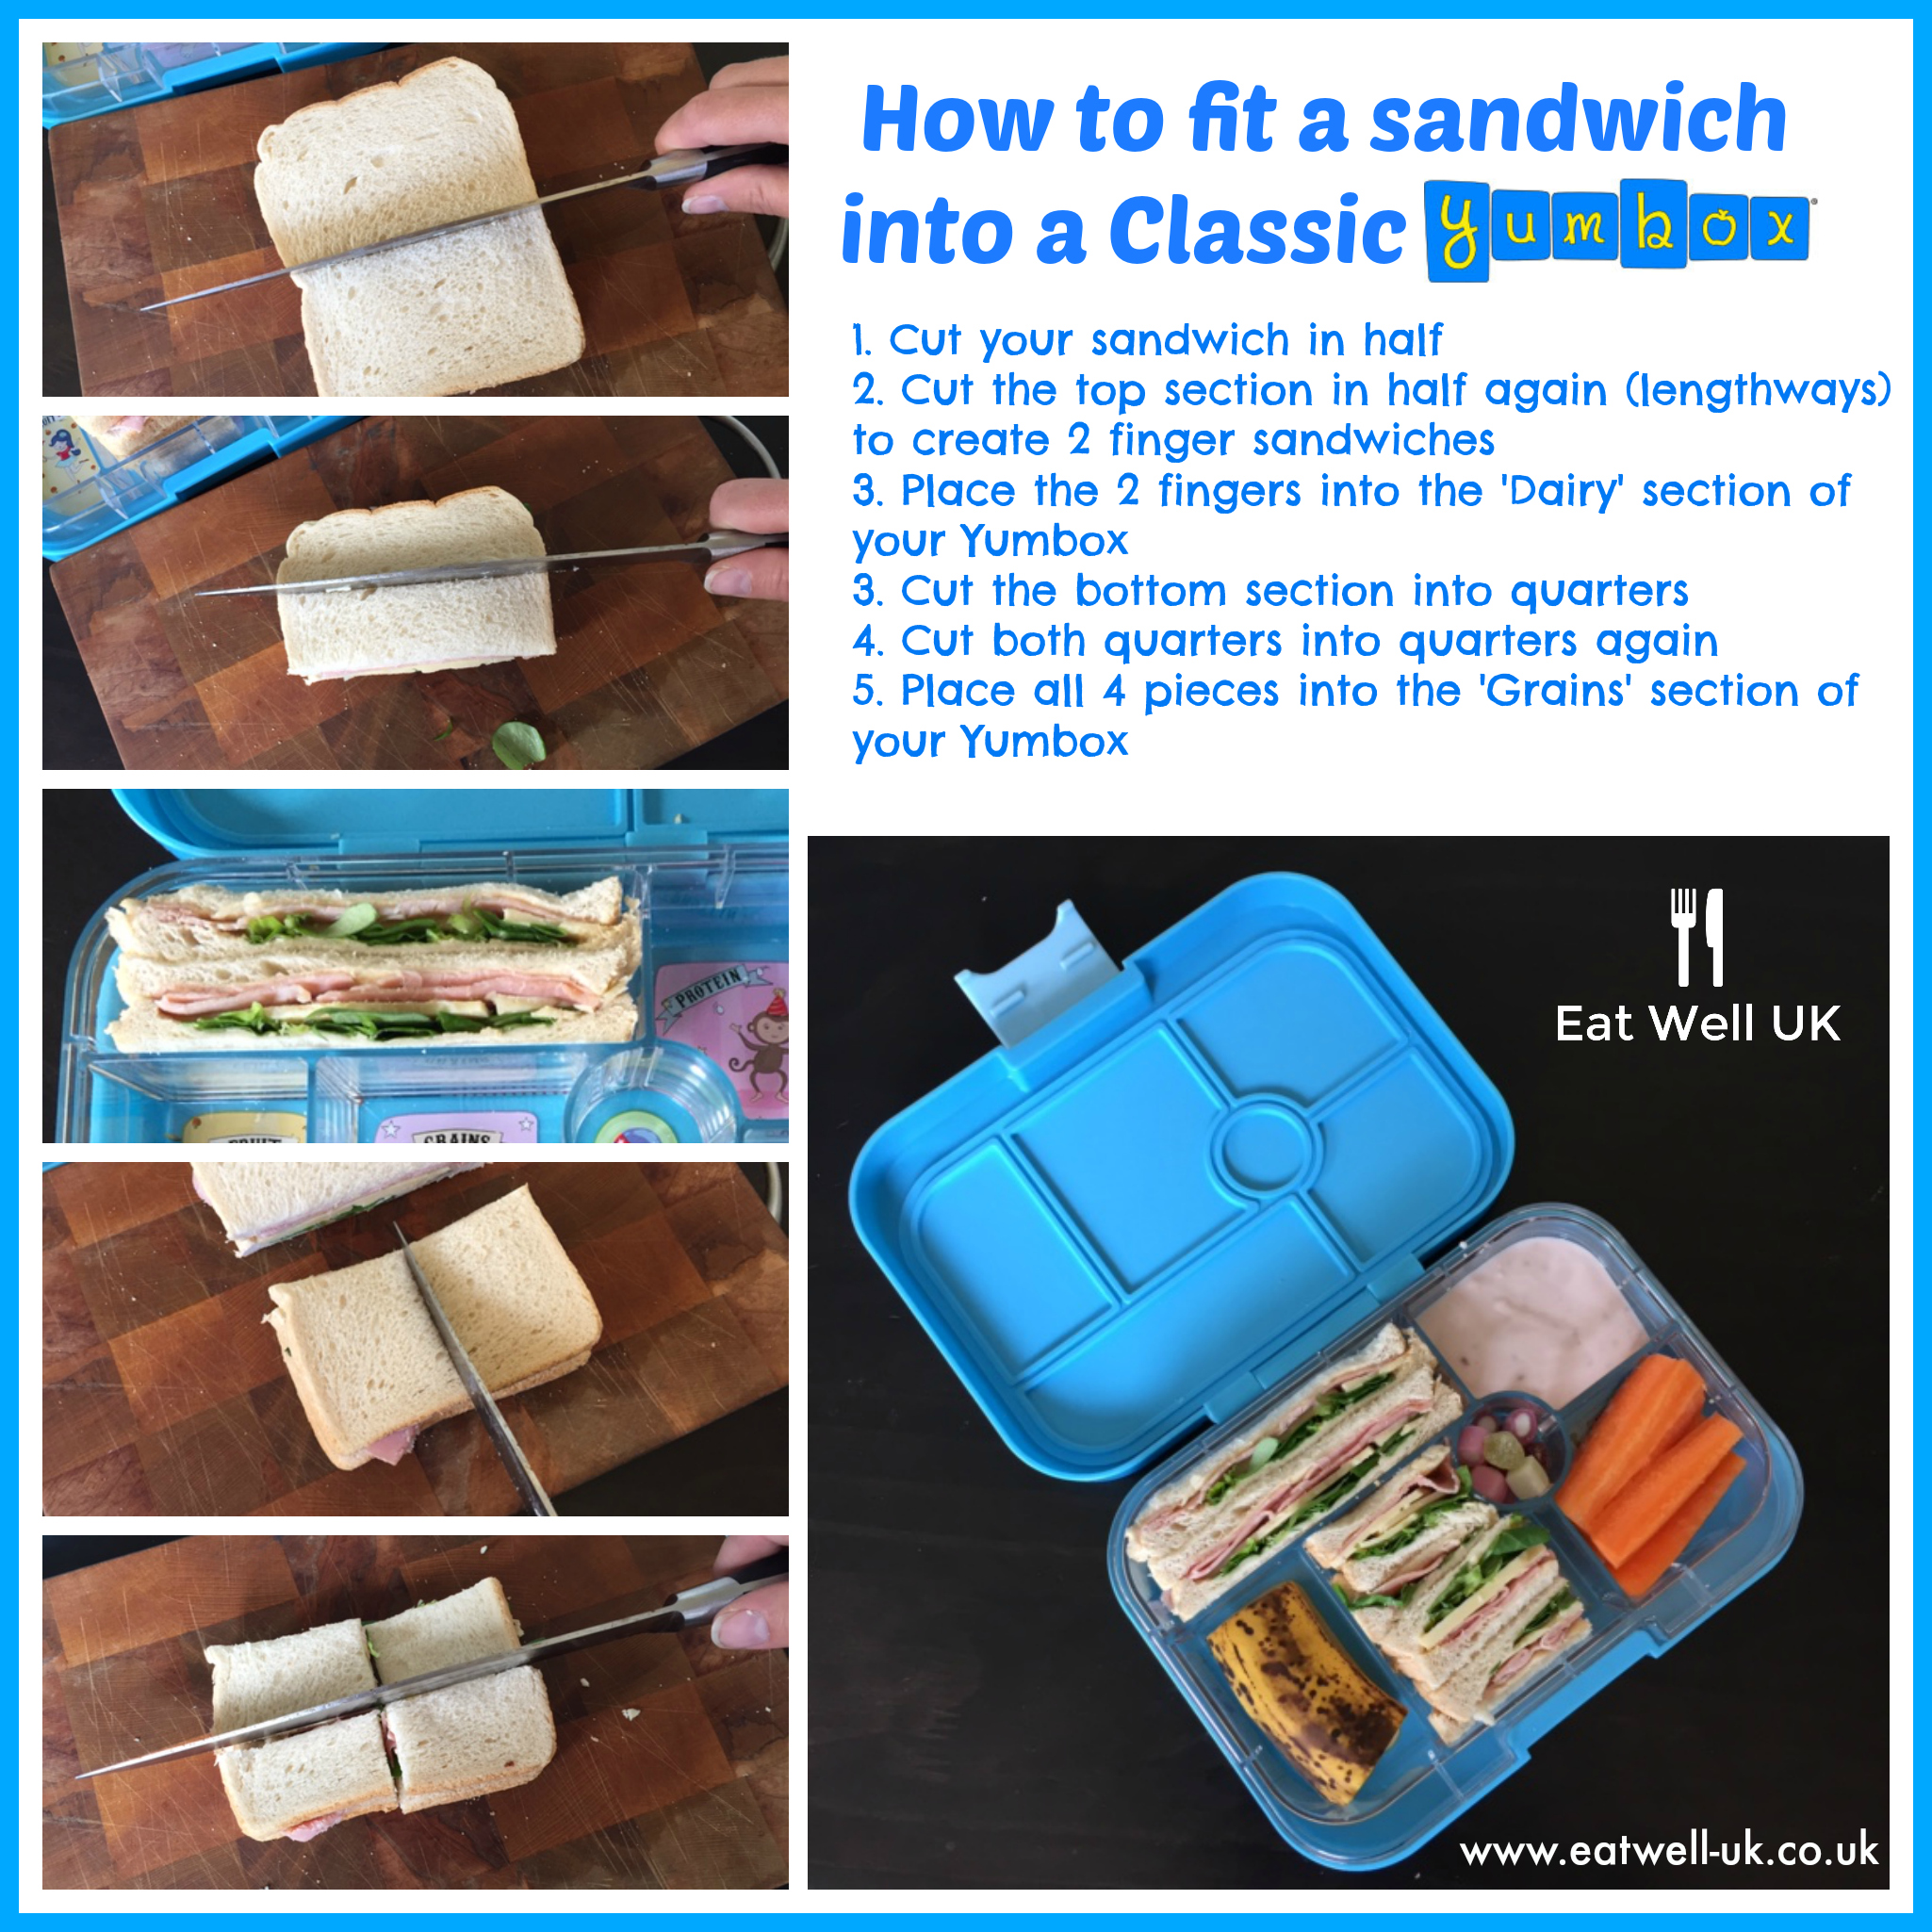 Afternoon Tea Sandwiches in the Classic Yumbox